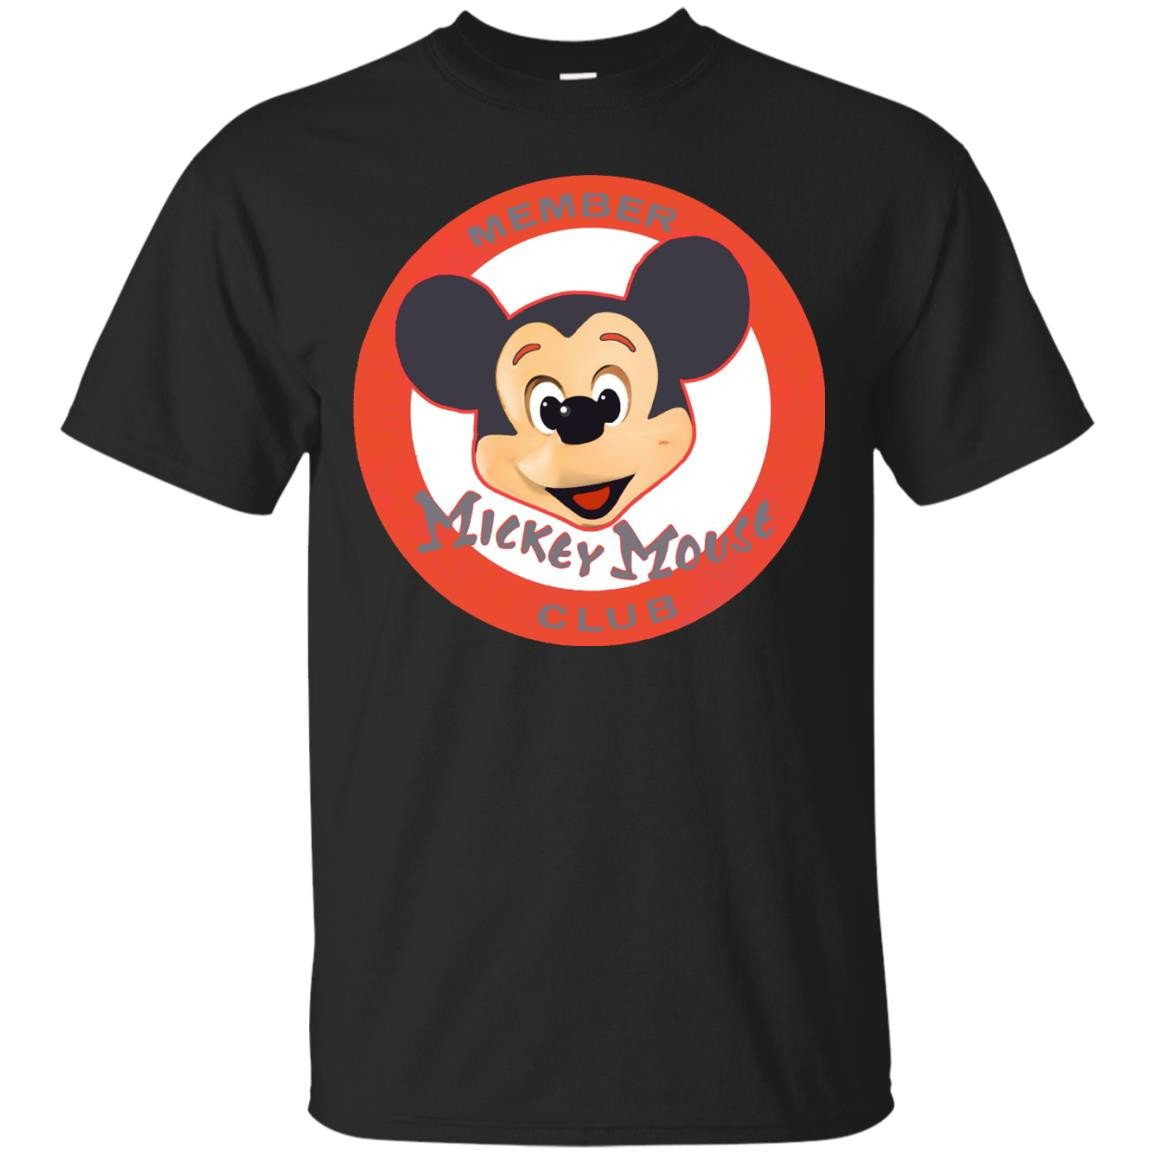 Mickey Mouse Club Cotton T-Shirt